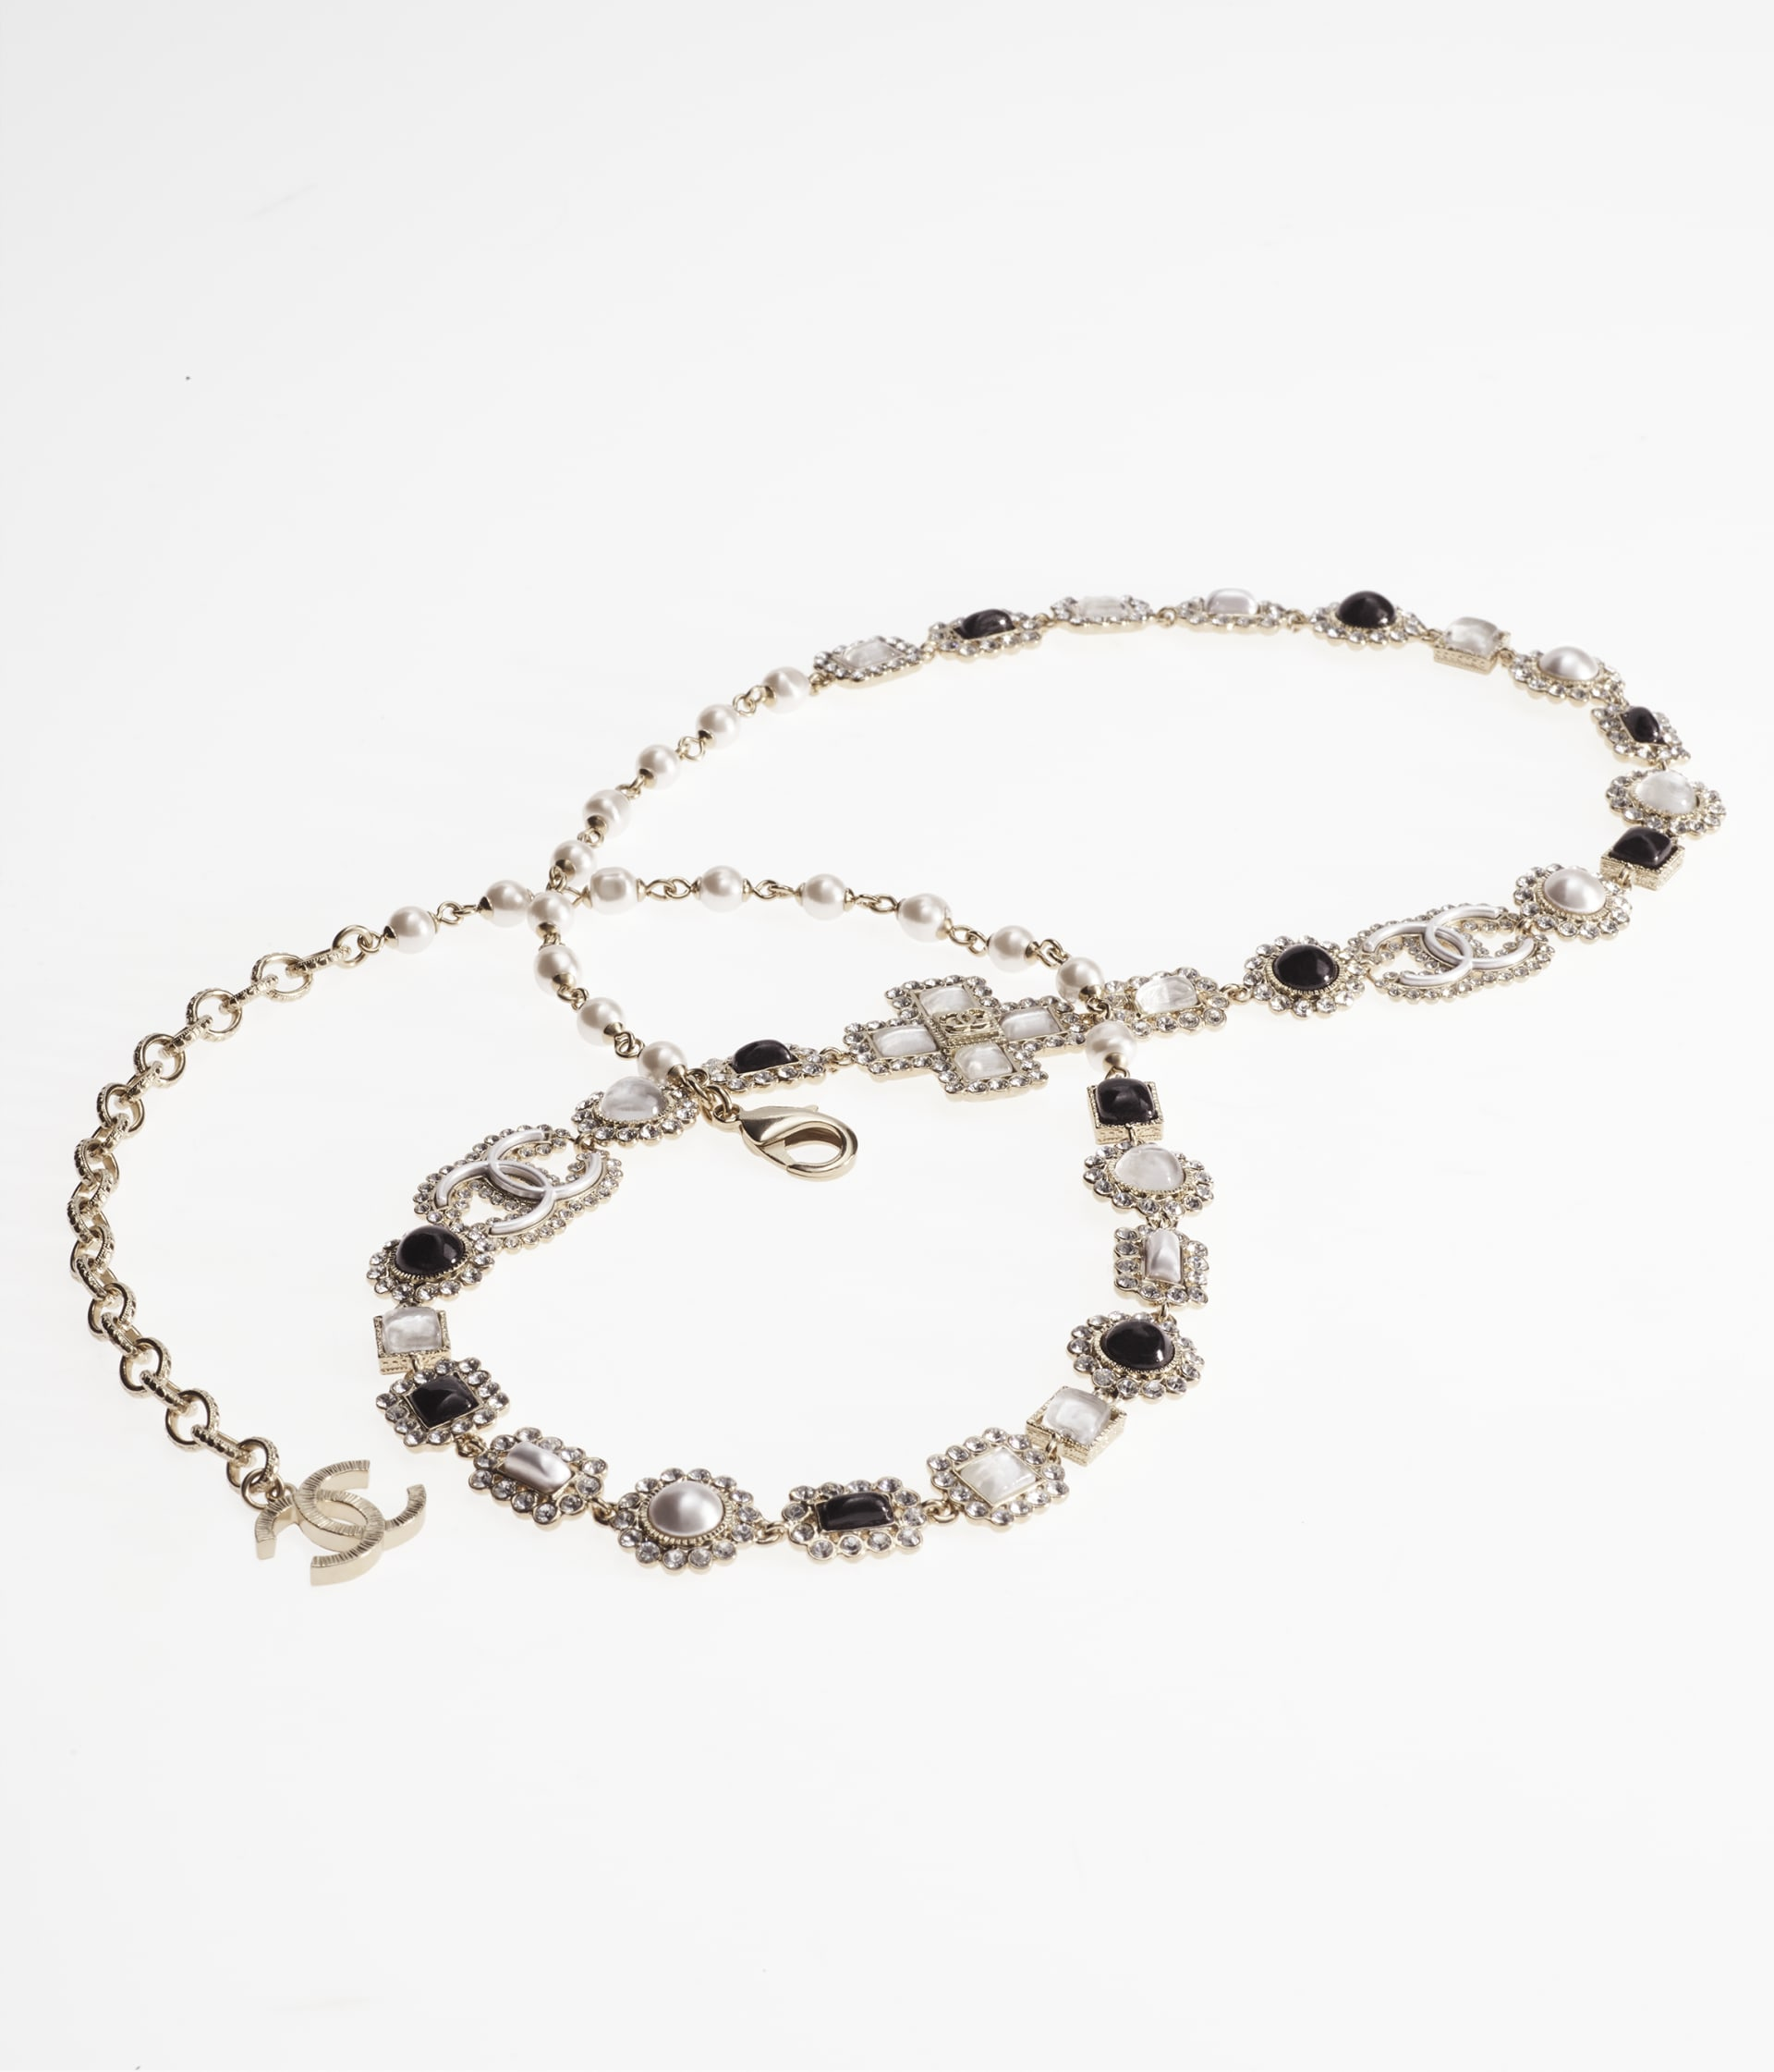 image 2 - Belt - Metal, Glass Pearls, Glass & Strass - Gold, Pearly White, Black & Crystal